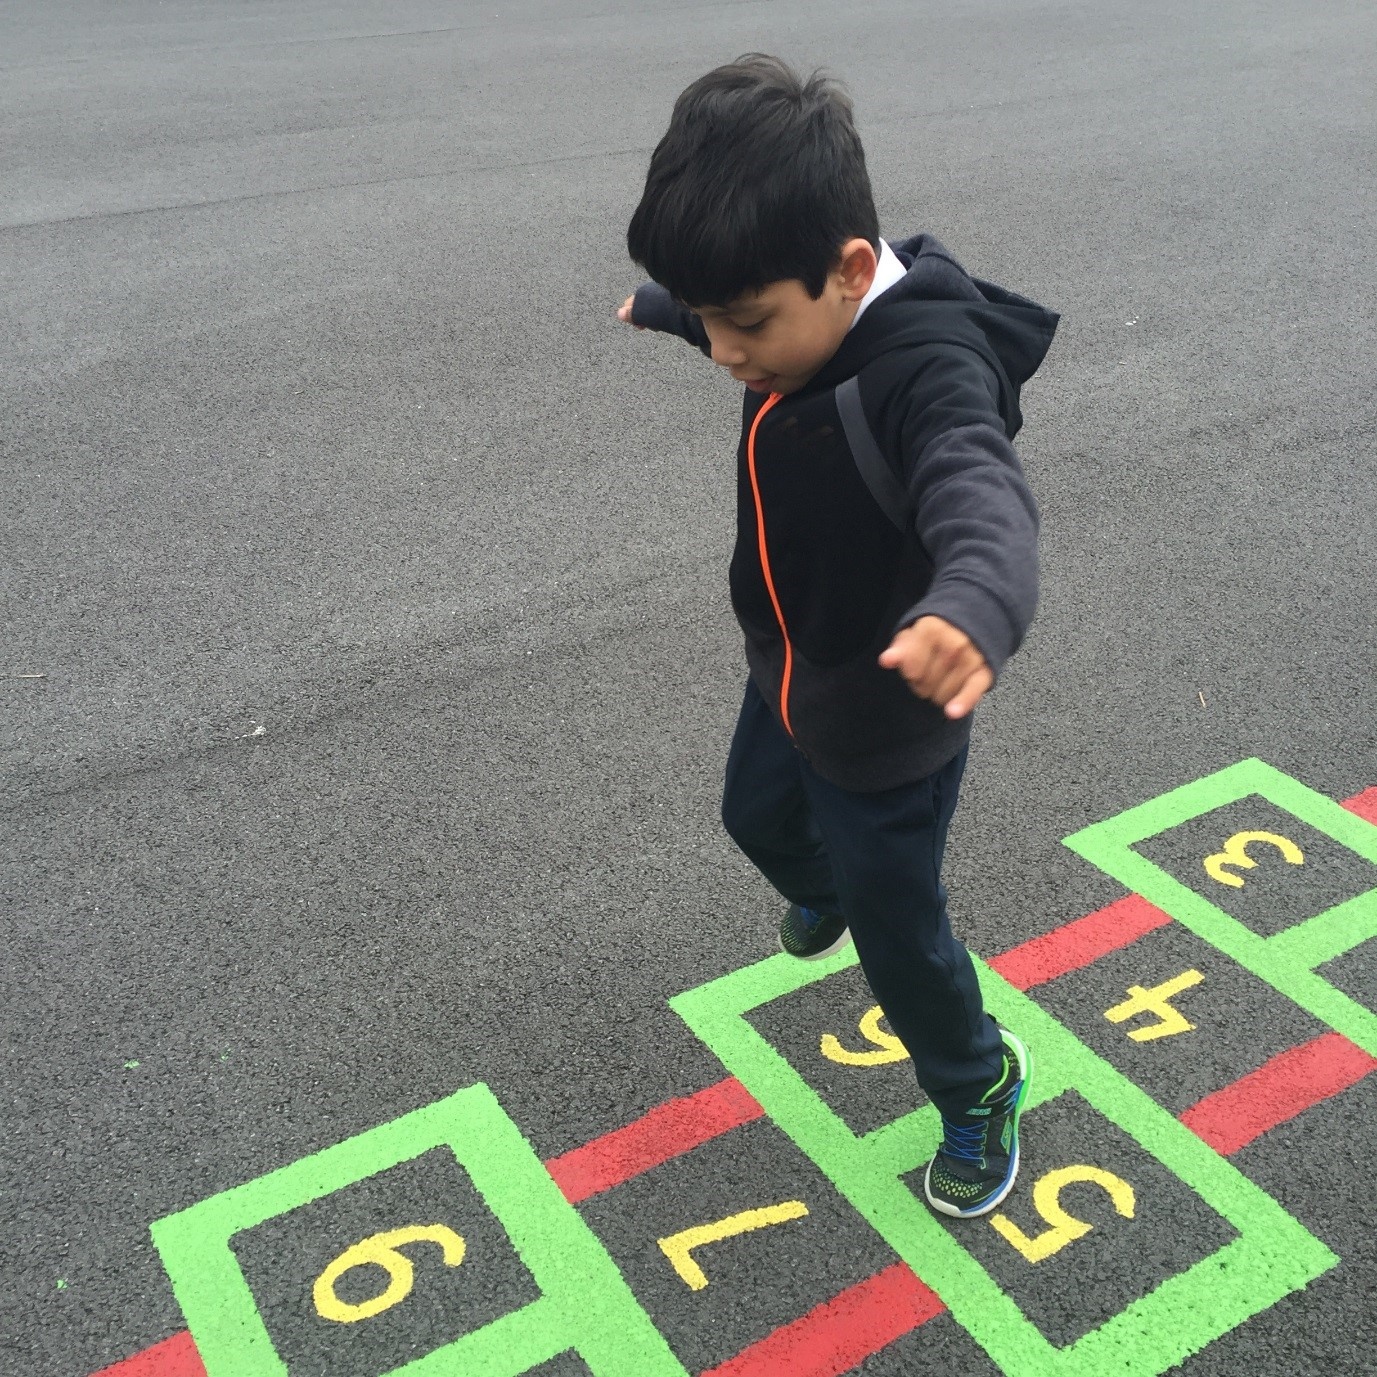 We even had time for a quick game of hopscotch!